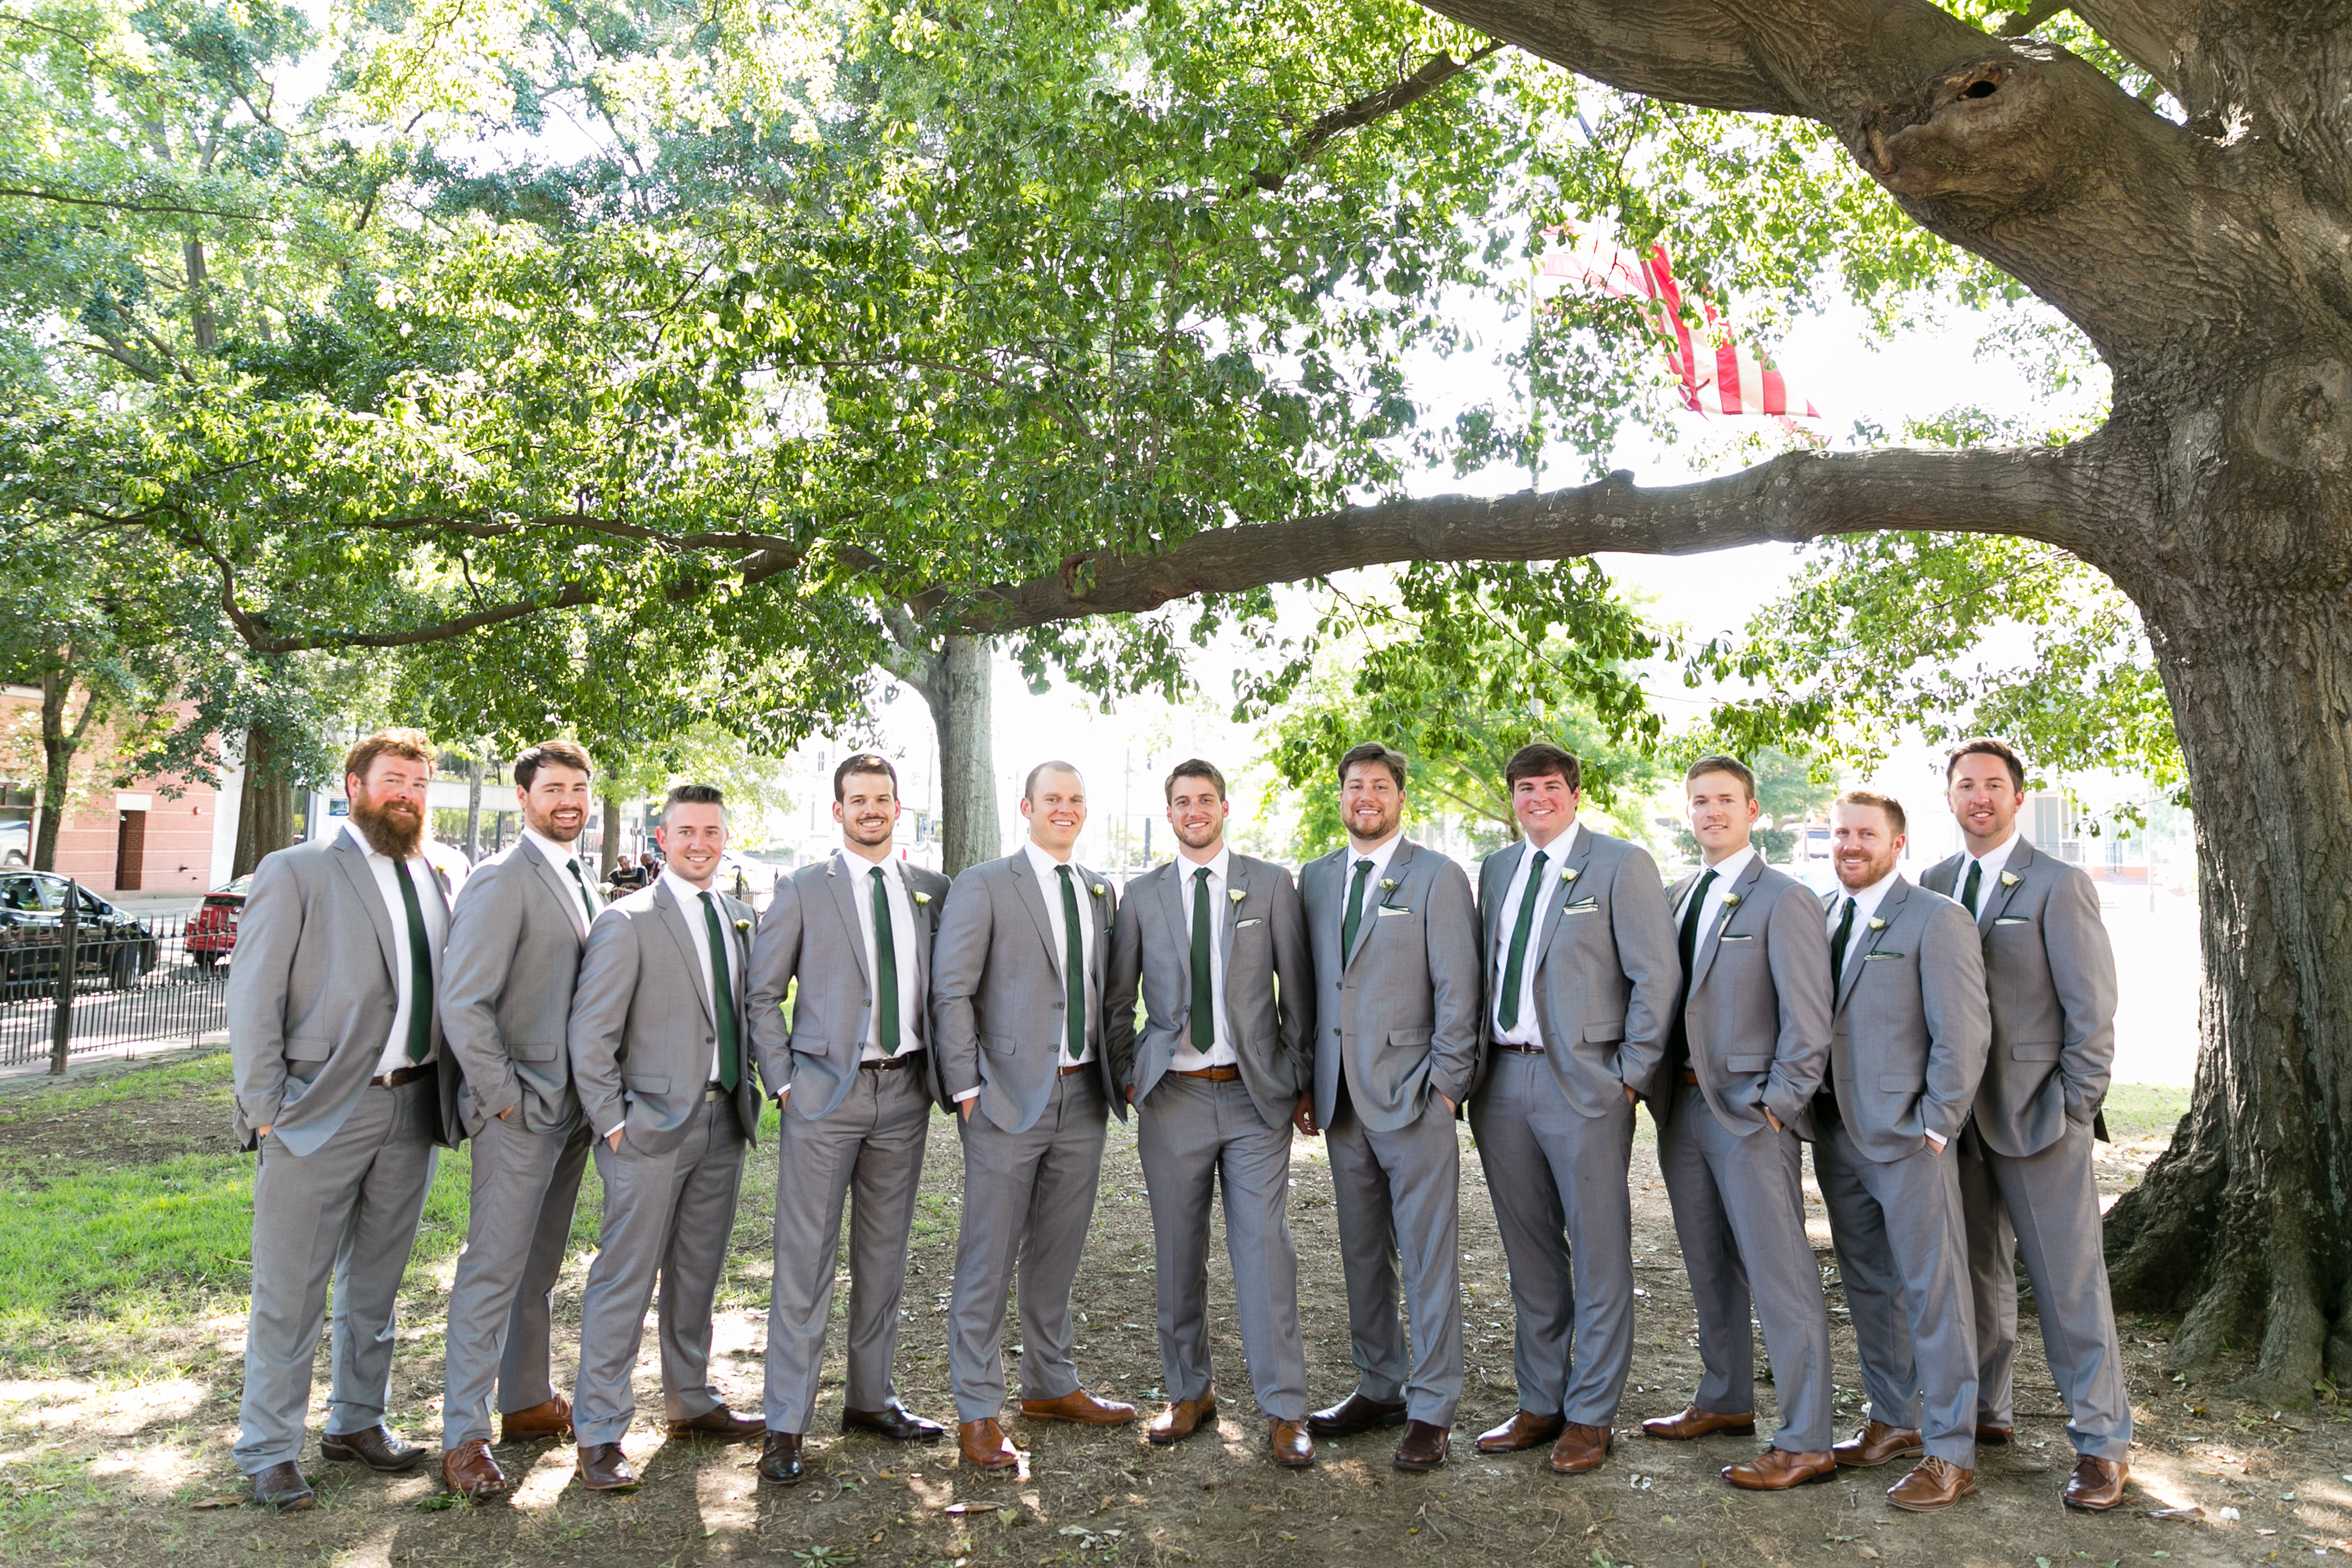 Patrick and Taylor - Real Weddings by The Groomsman Suit